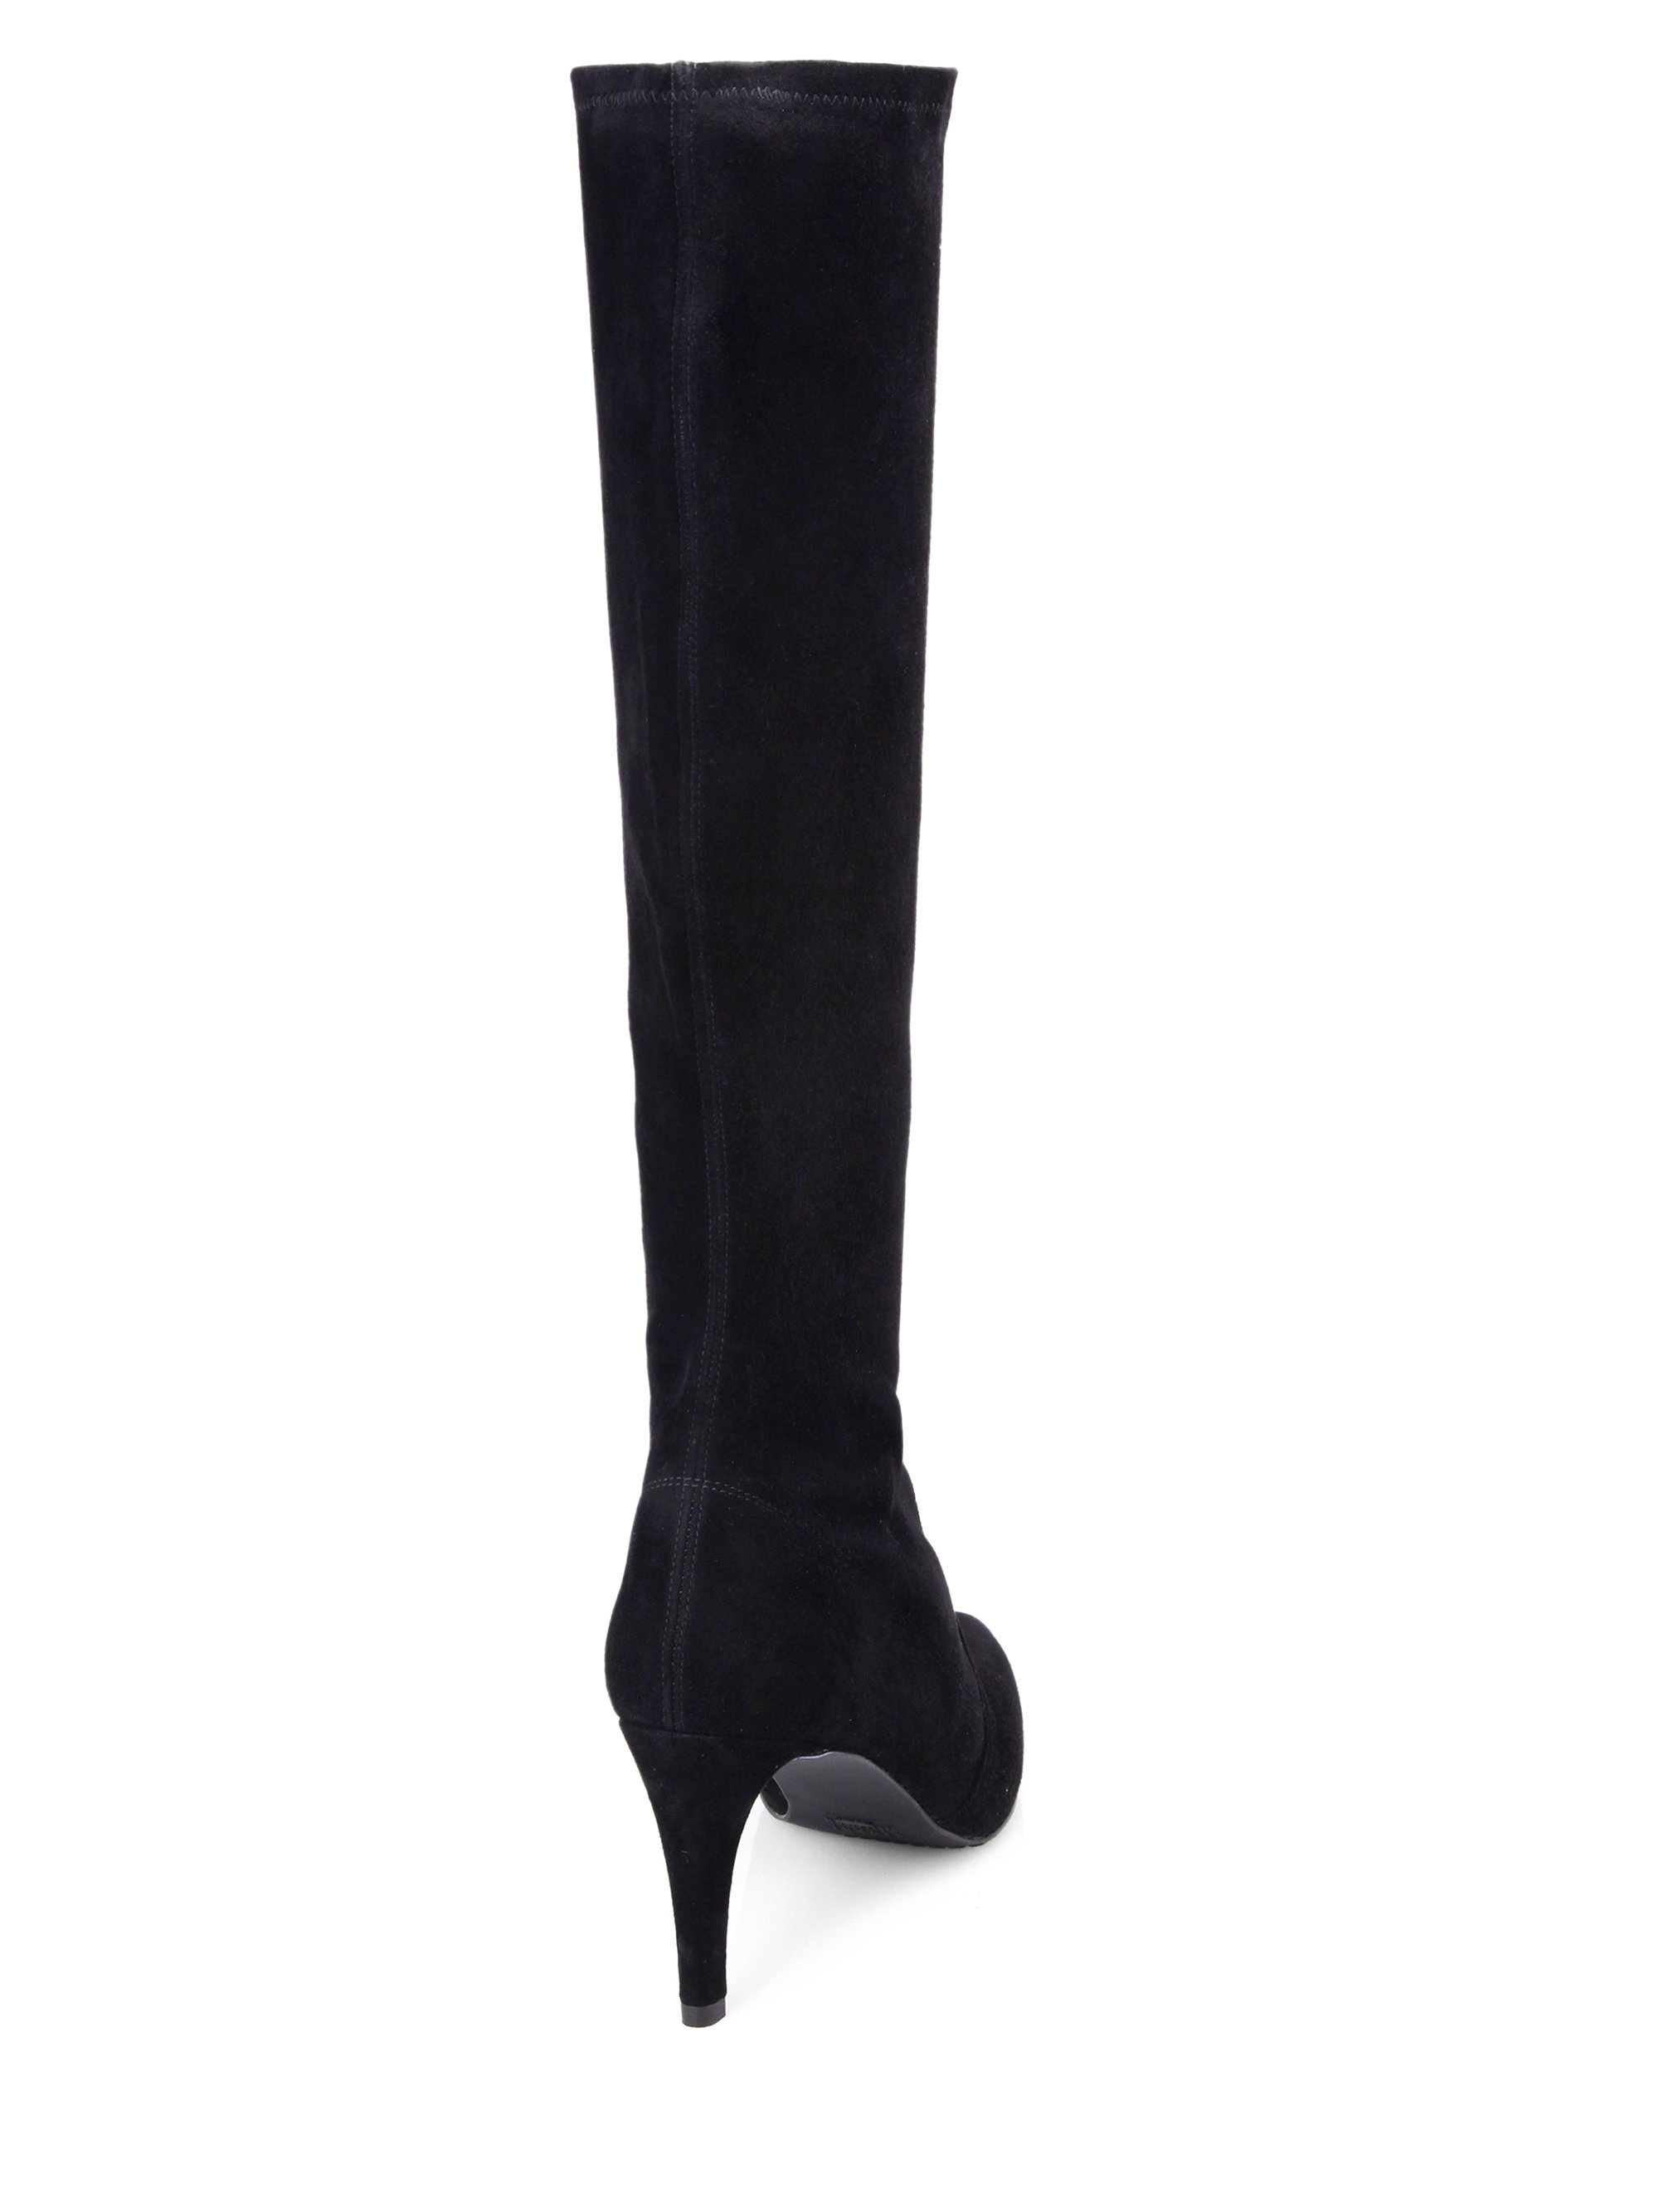 39d3e19bdded Lyst - Stuart Weitzman Coolboot Suede Knee-High Boots in Black